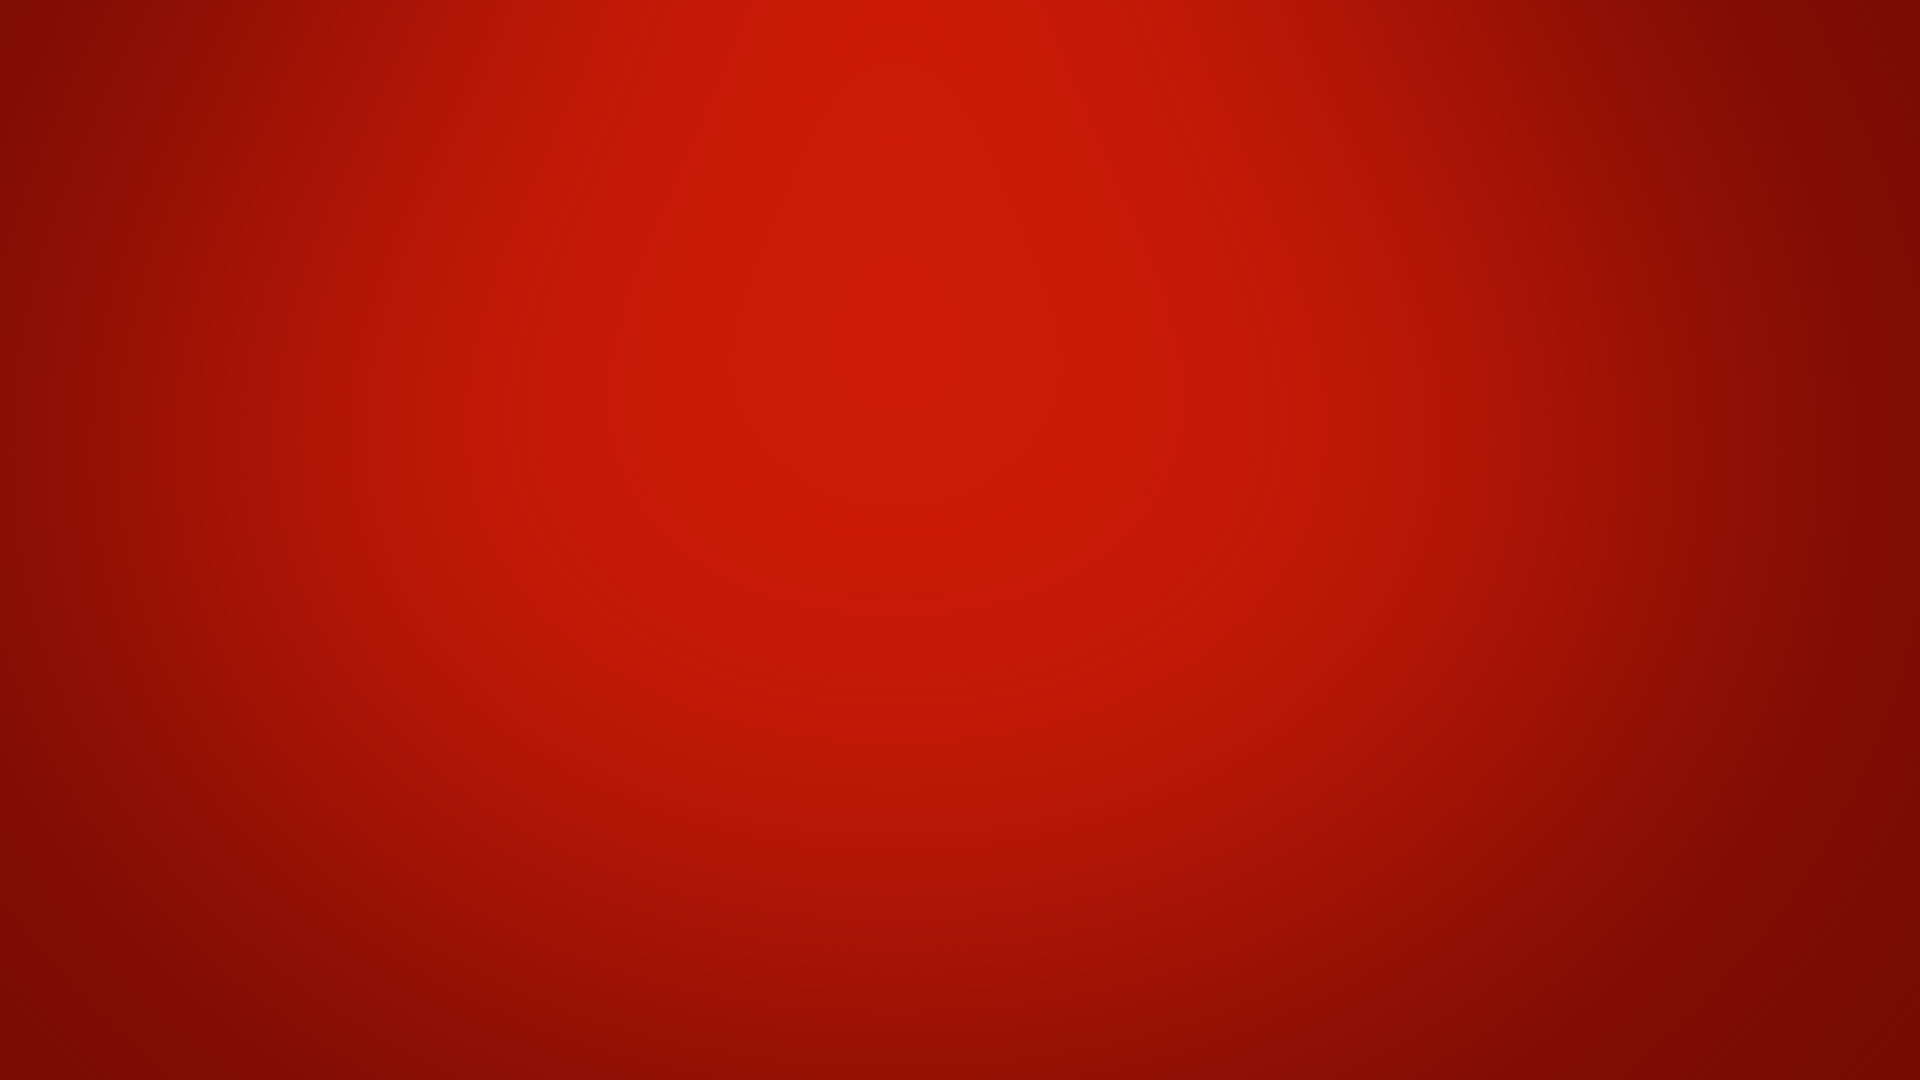 Red Gradient Background Powerpoint Backgrounds For Free Powerpoint Templates